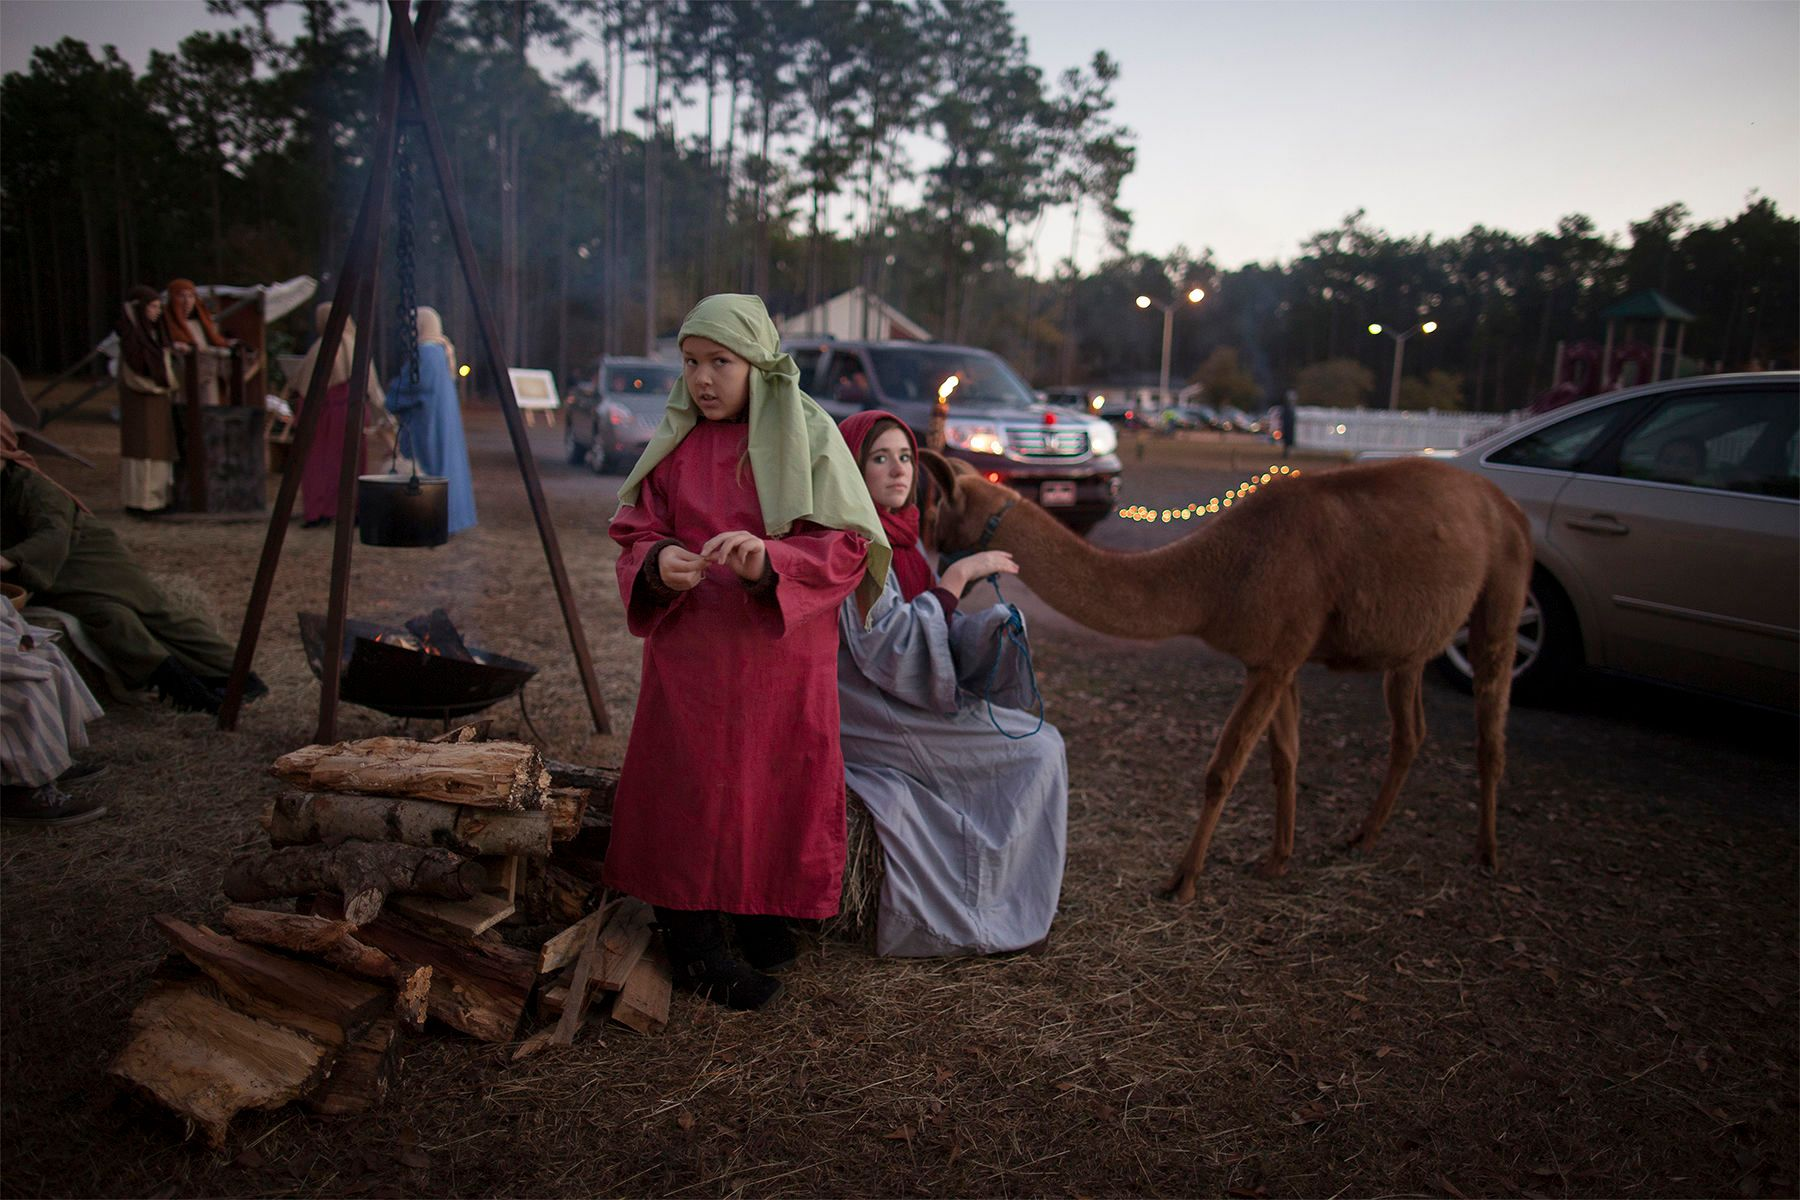 Kristina Gray, left, and Tara Hutchinson, perform as villagers at the Bethlehem Inn during The Church of the Resurrection's 3rd annual Return to Bethlehem Drive-Thru Nativity presentation Sunday night in Surfside Beach. About 75 actors, performed by parishioners of the church, told the story of the Nativity in seven stages where viewers could watch from the warmth of their cars. The event was free to the public and included live animals to give the presentation authenticity.